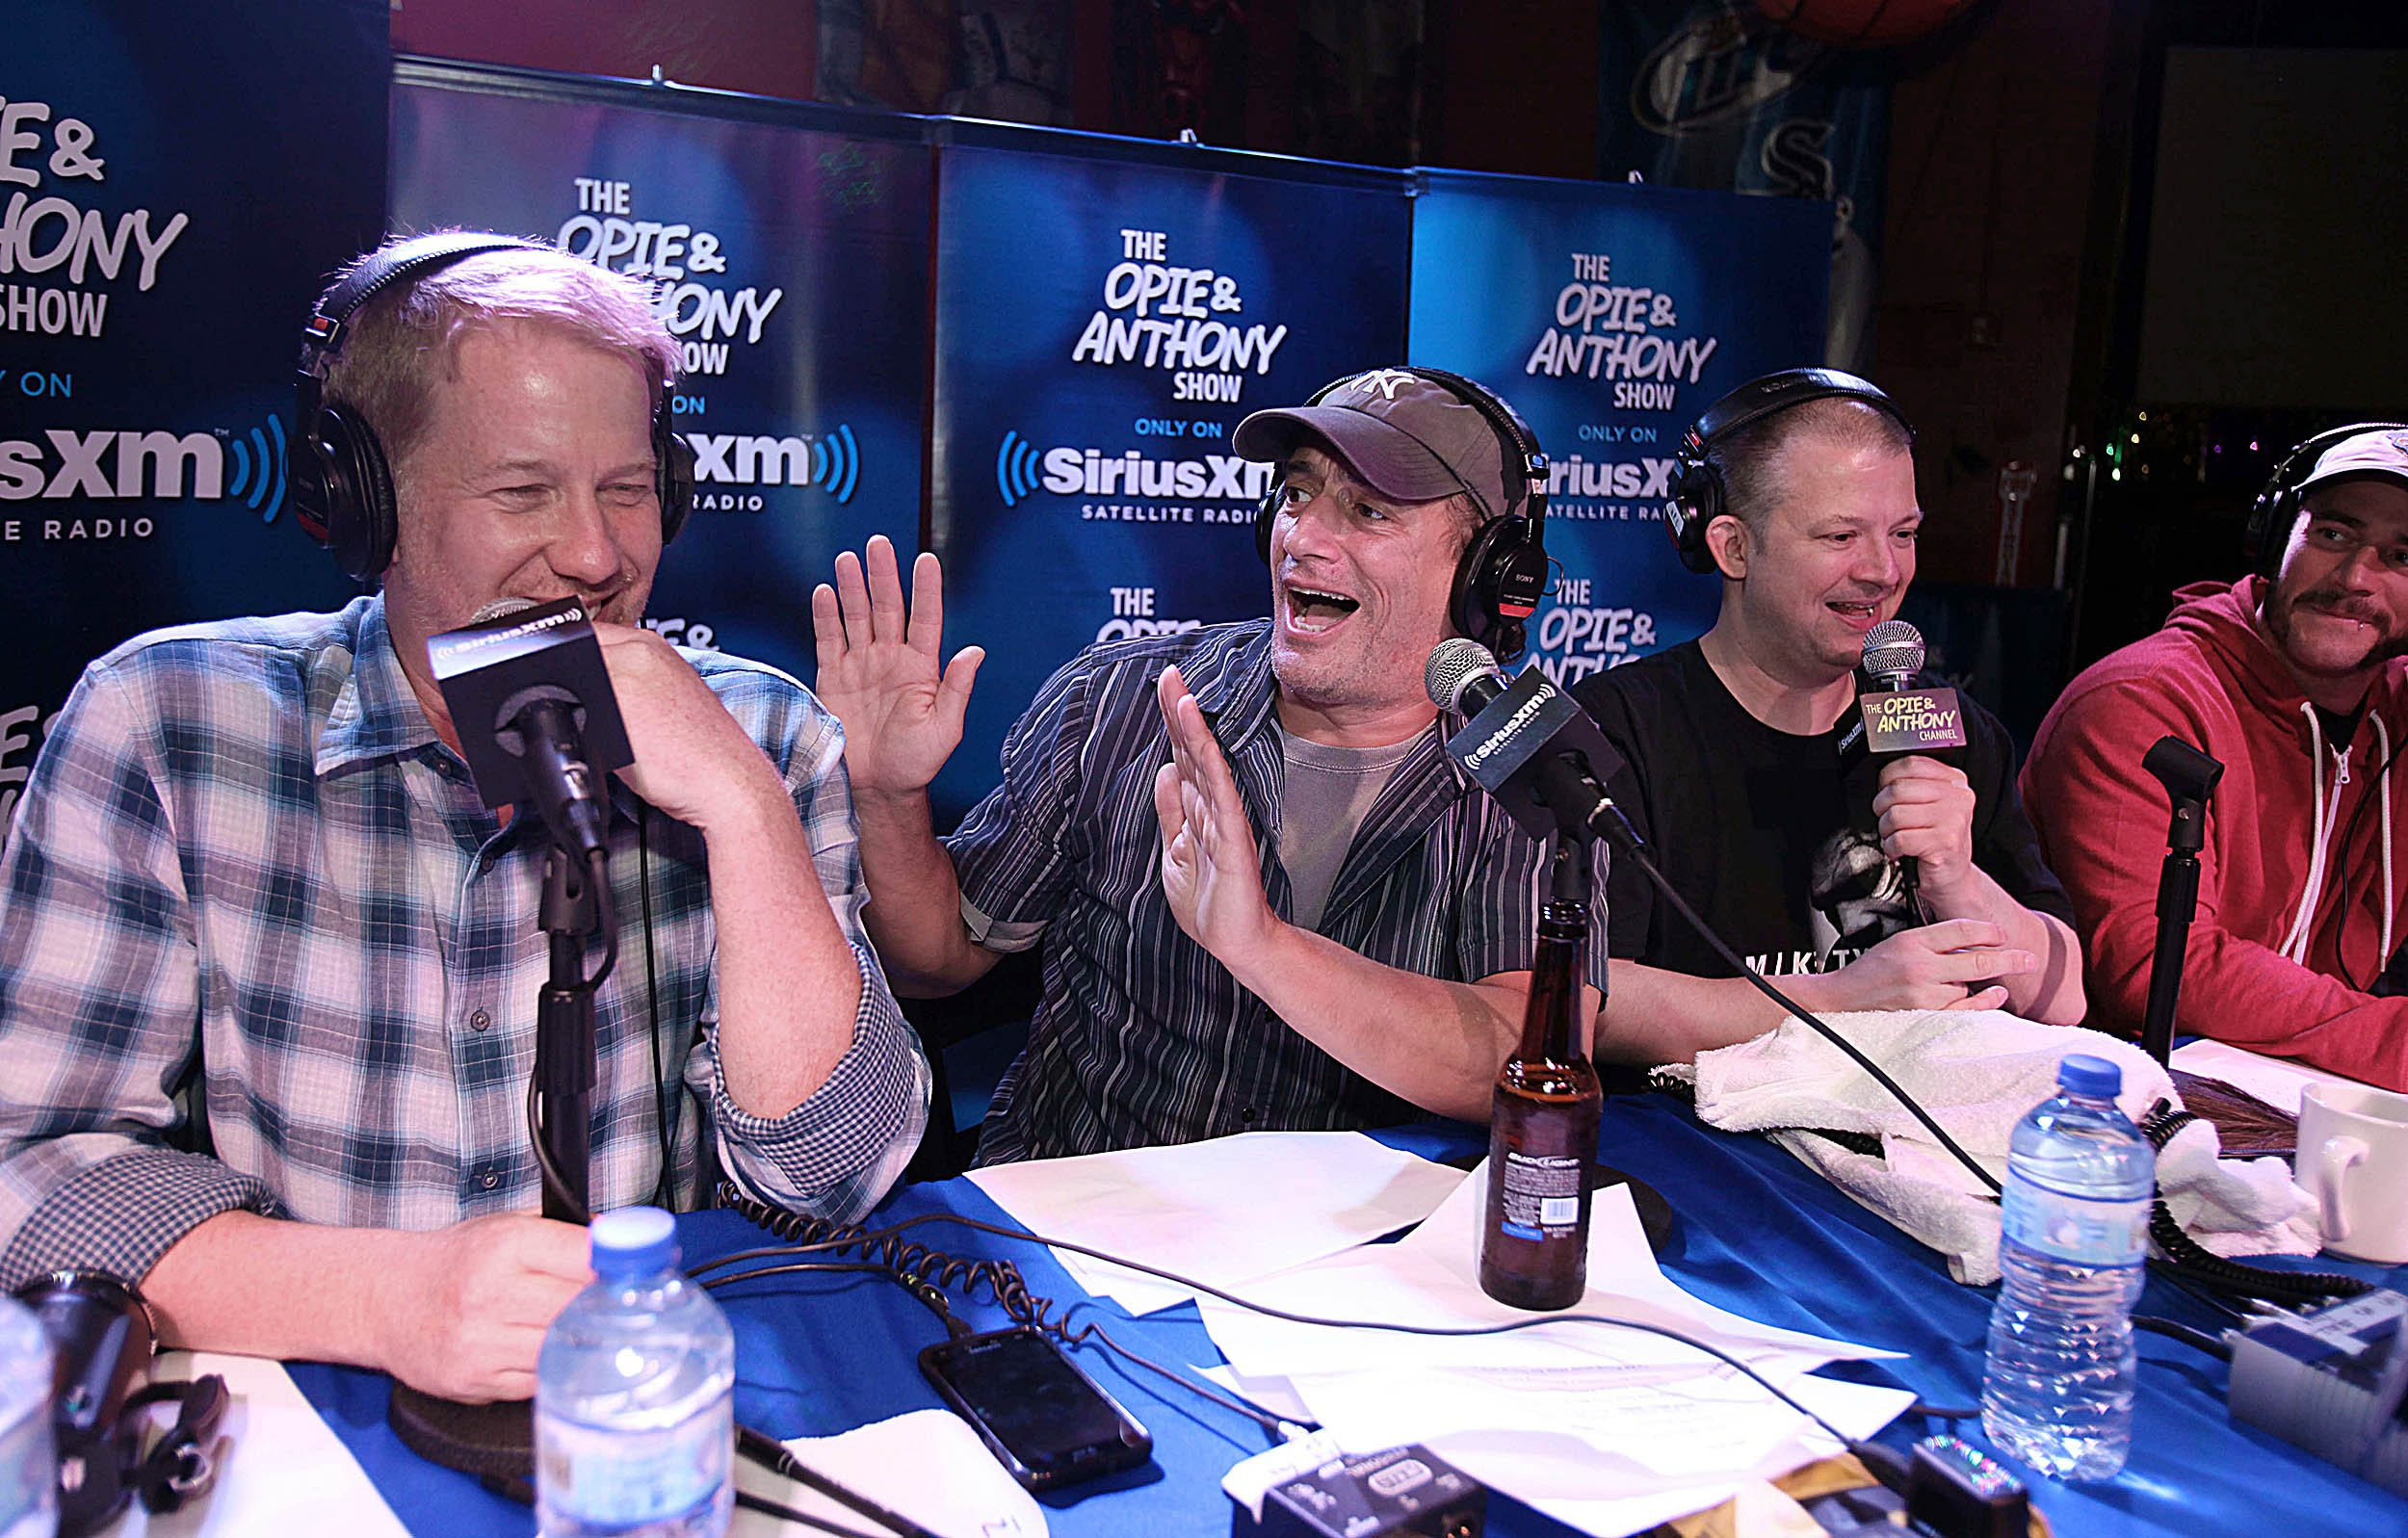 Opie and Anthony No More: Inside the Nasty Breakup of Radio's Most